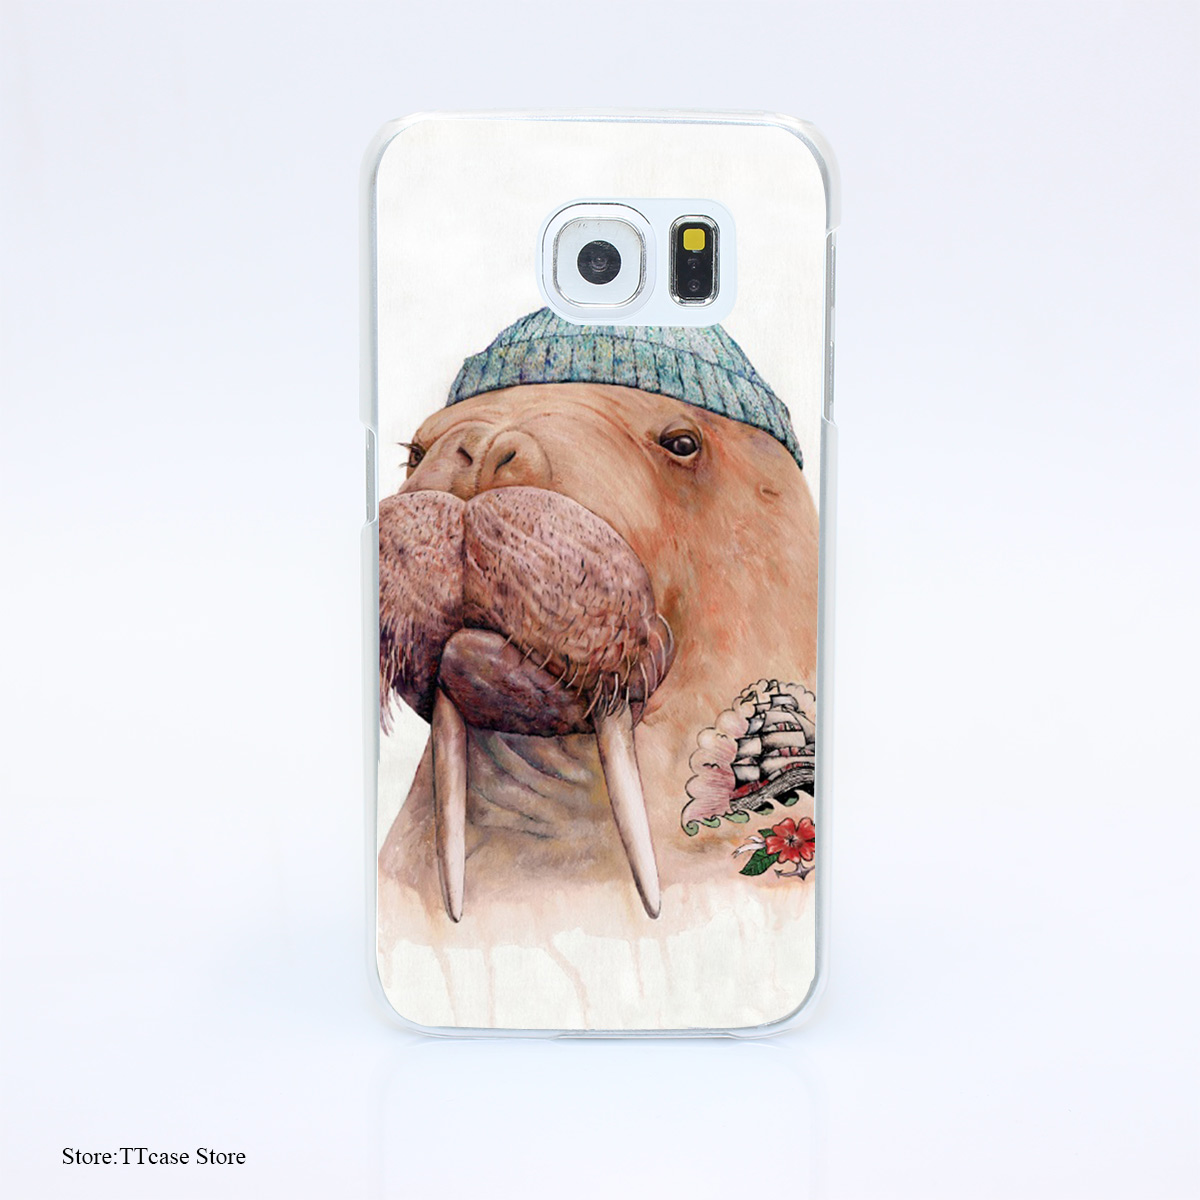 3281G Tattooed Walrus Print Hard Transparent font b Case b font Cover for Galaxy S3 S4